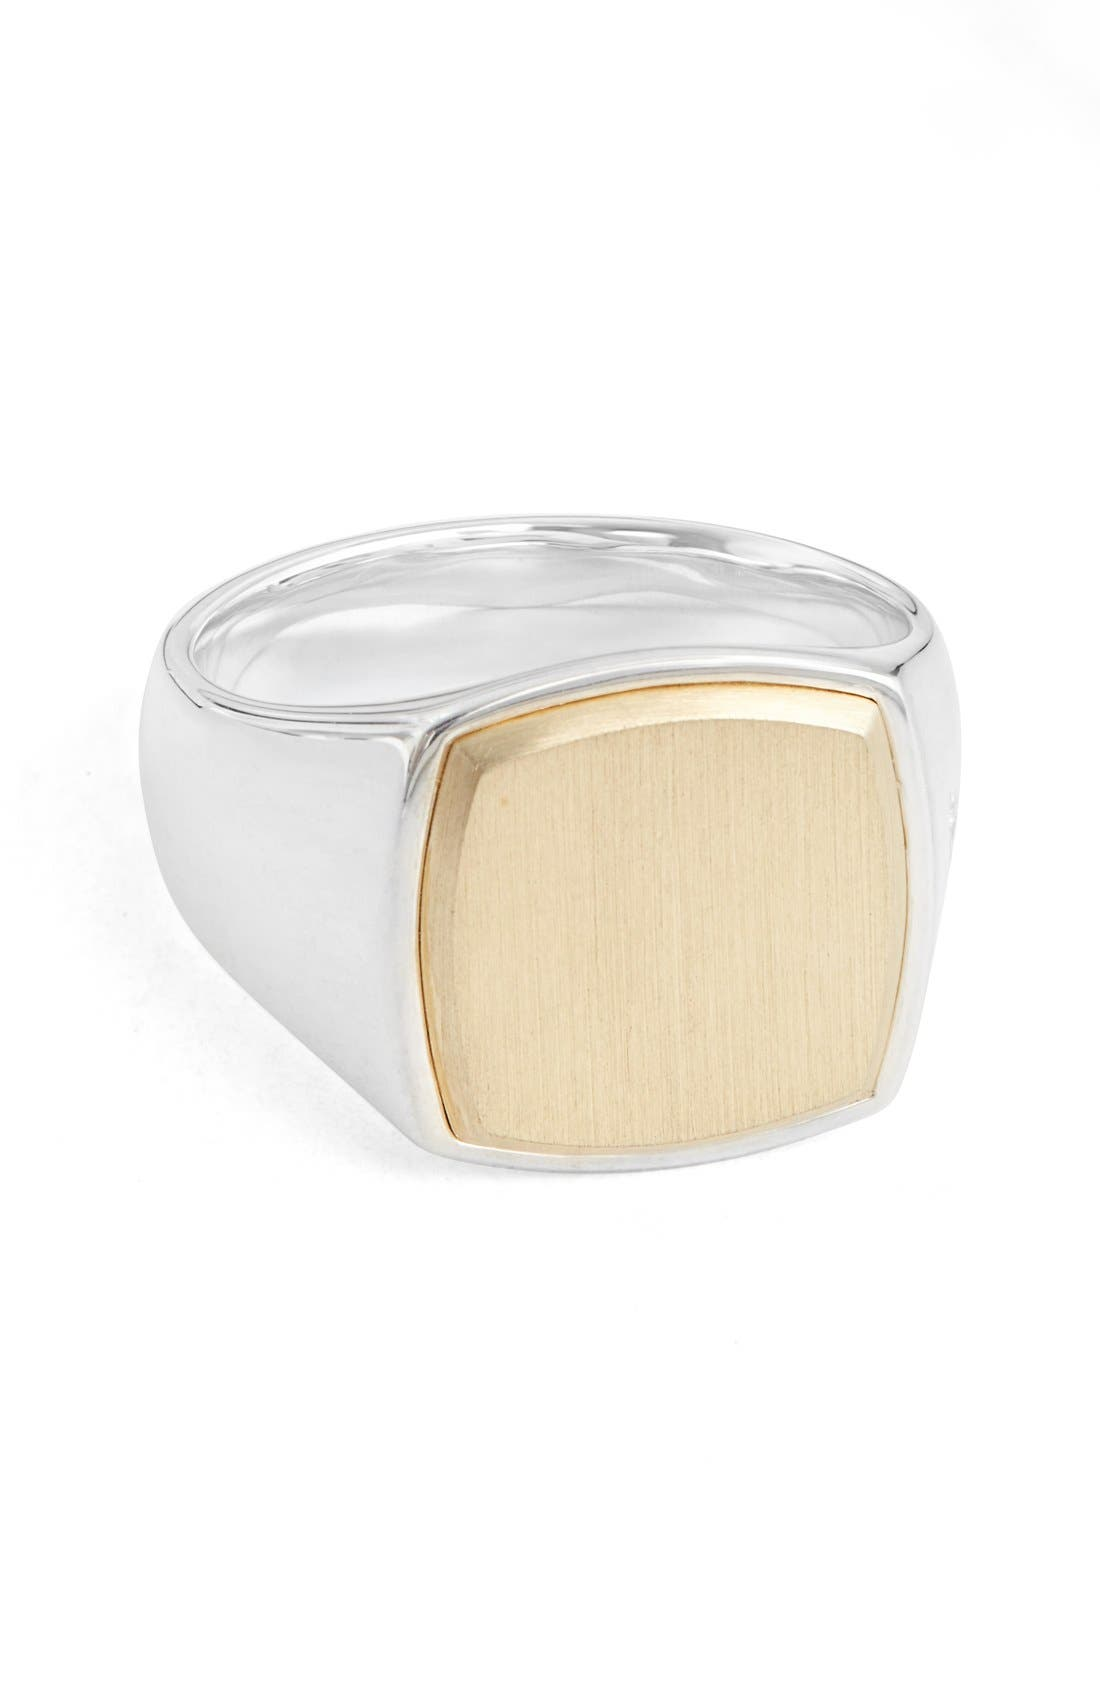 TOM WOOD Patriot Collection Cushion Gold Top Signet Ring